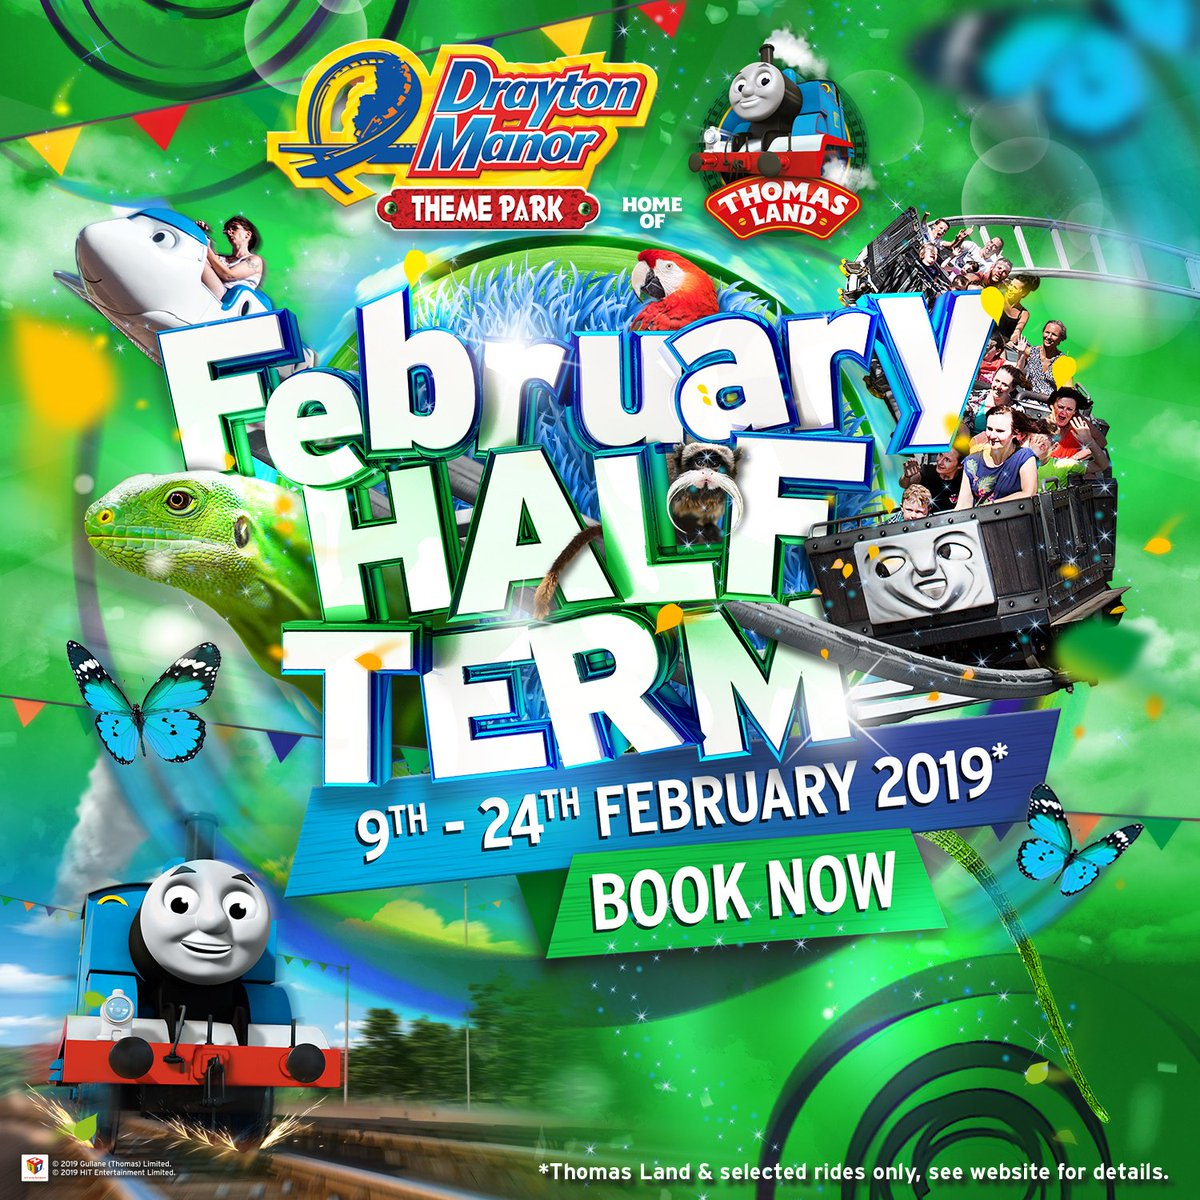 Looking for family fun this February Half Term? Why not bring your little one to meet Thomas & Friends at Europe's only Thomas Land and discover our fascinating 15-acre zoo? Book now http://socsi.in/J7pZH